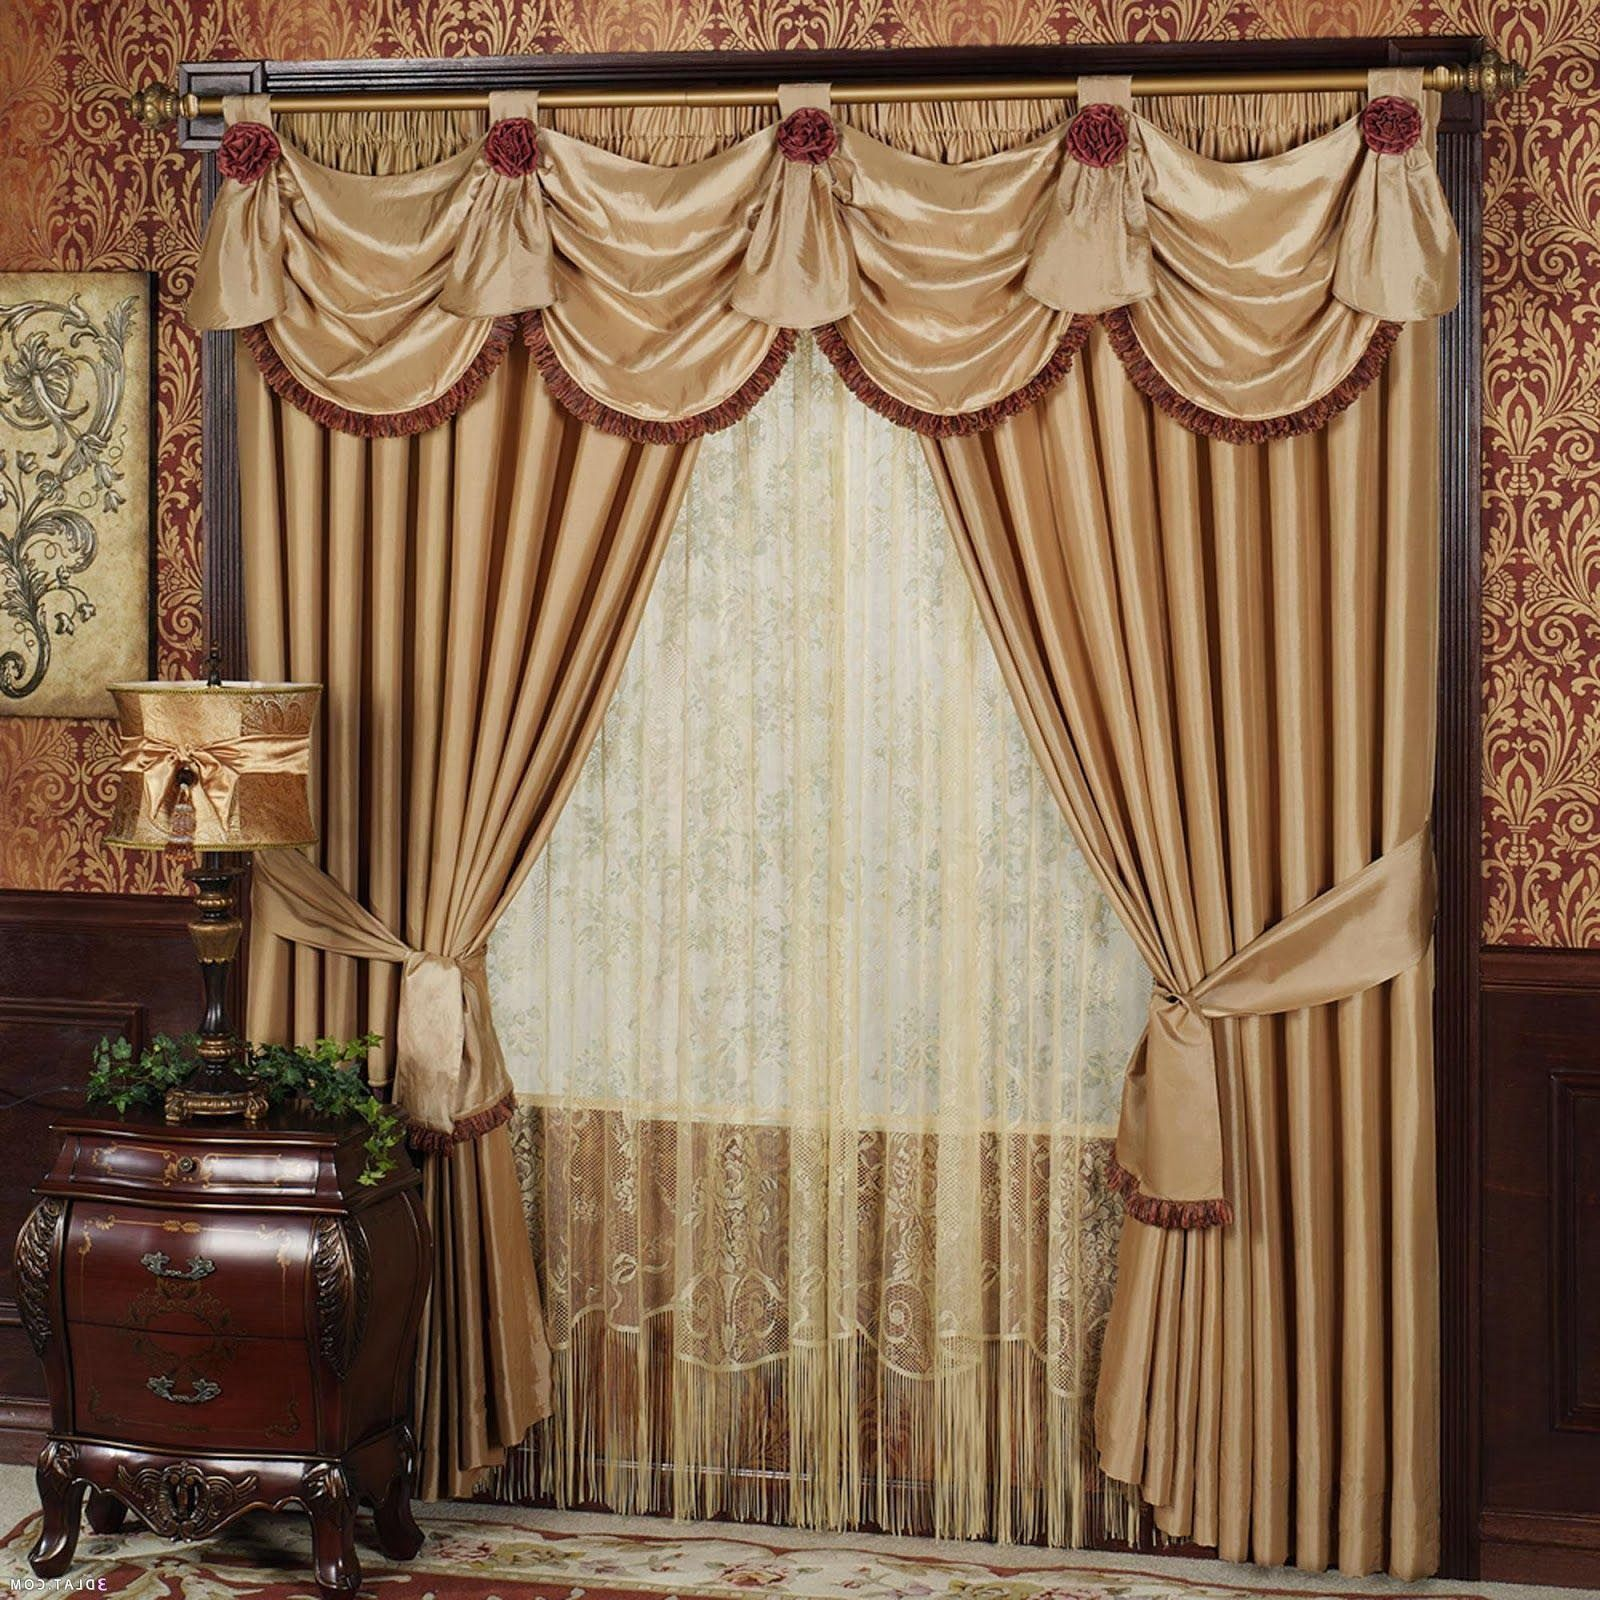 Living Room Curtain Design Best Living Room Drapes With Valances  Valances  Pinterest  Valance Design Inspiration